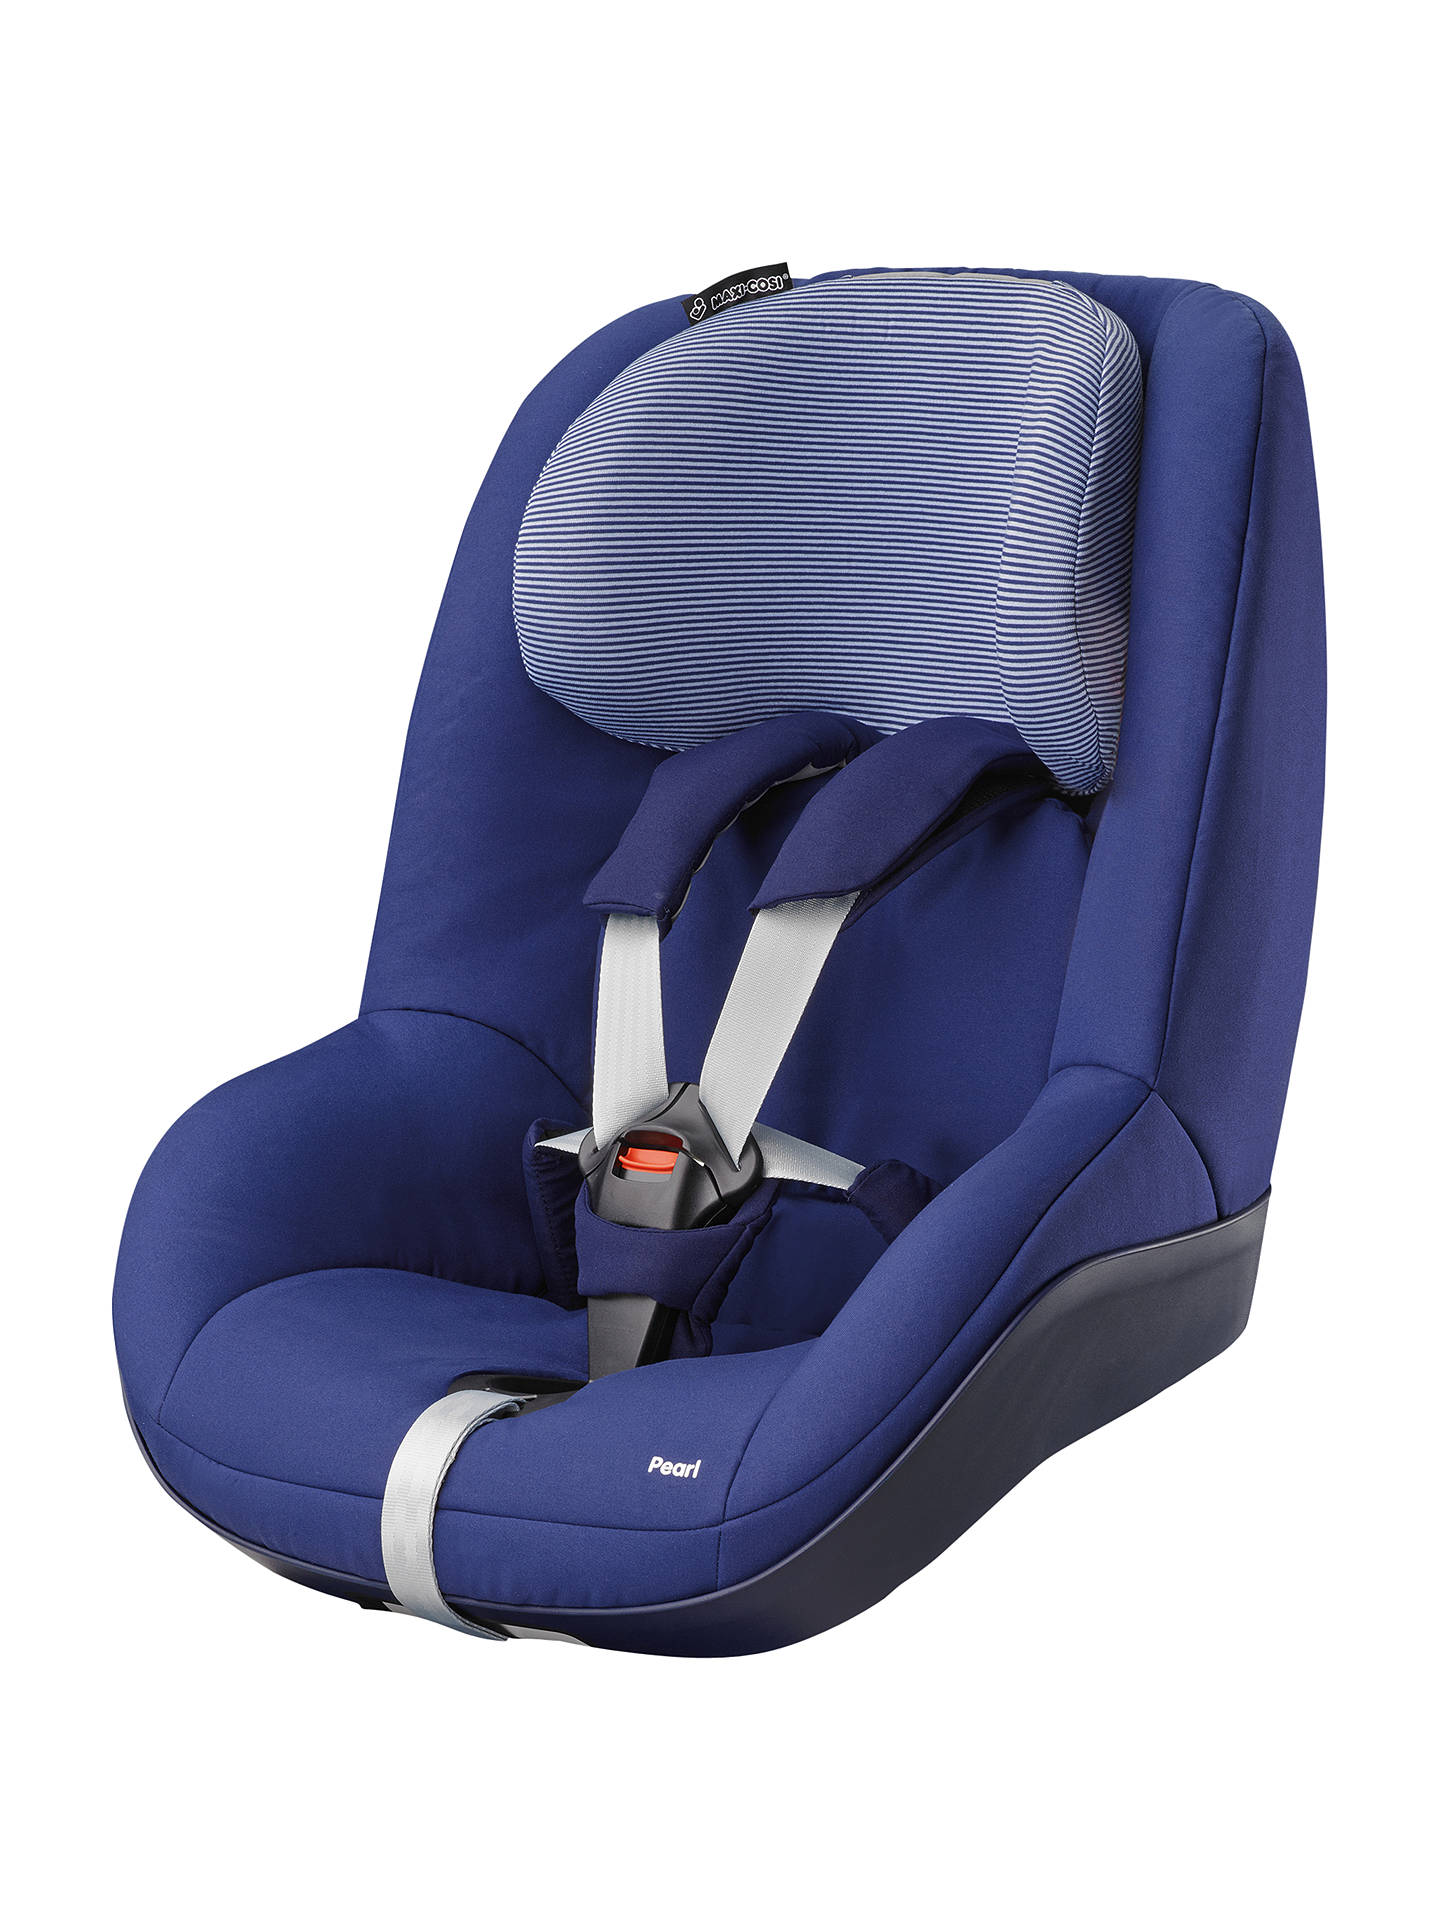 maxi cosi pearl group 1 car seat river blue at john lewis. Black Bedroom Furniture Sets. Home Design Ideas